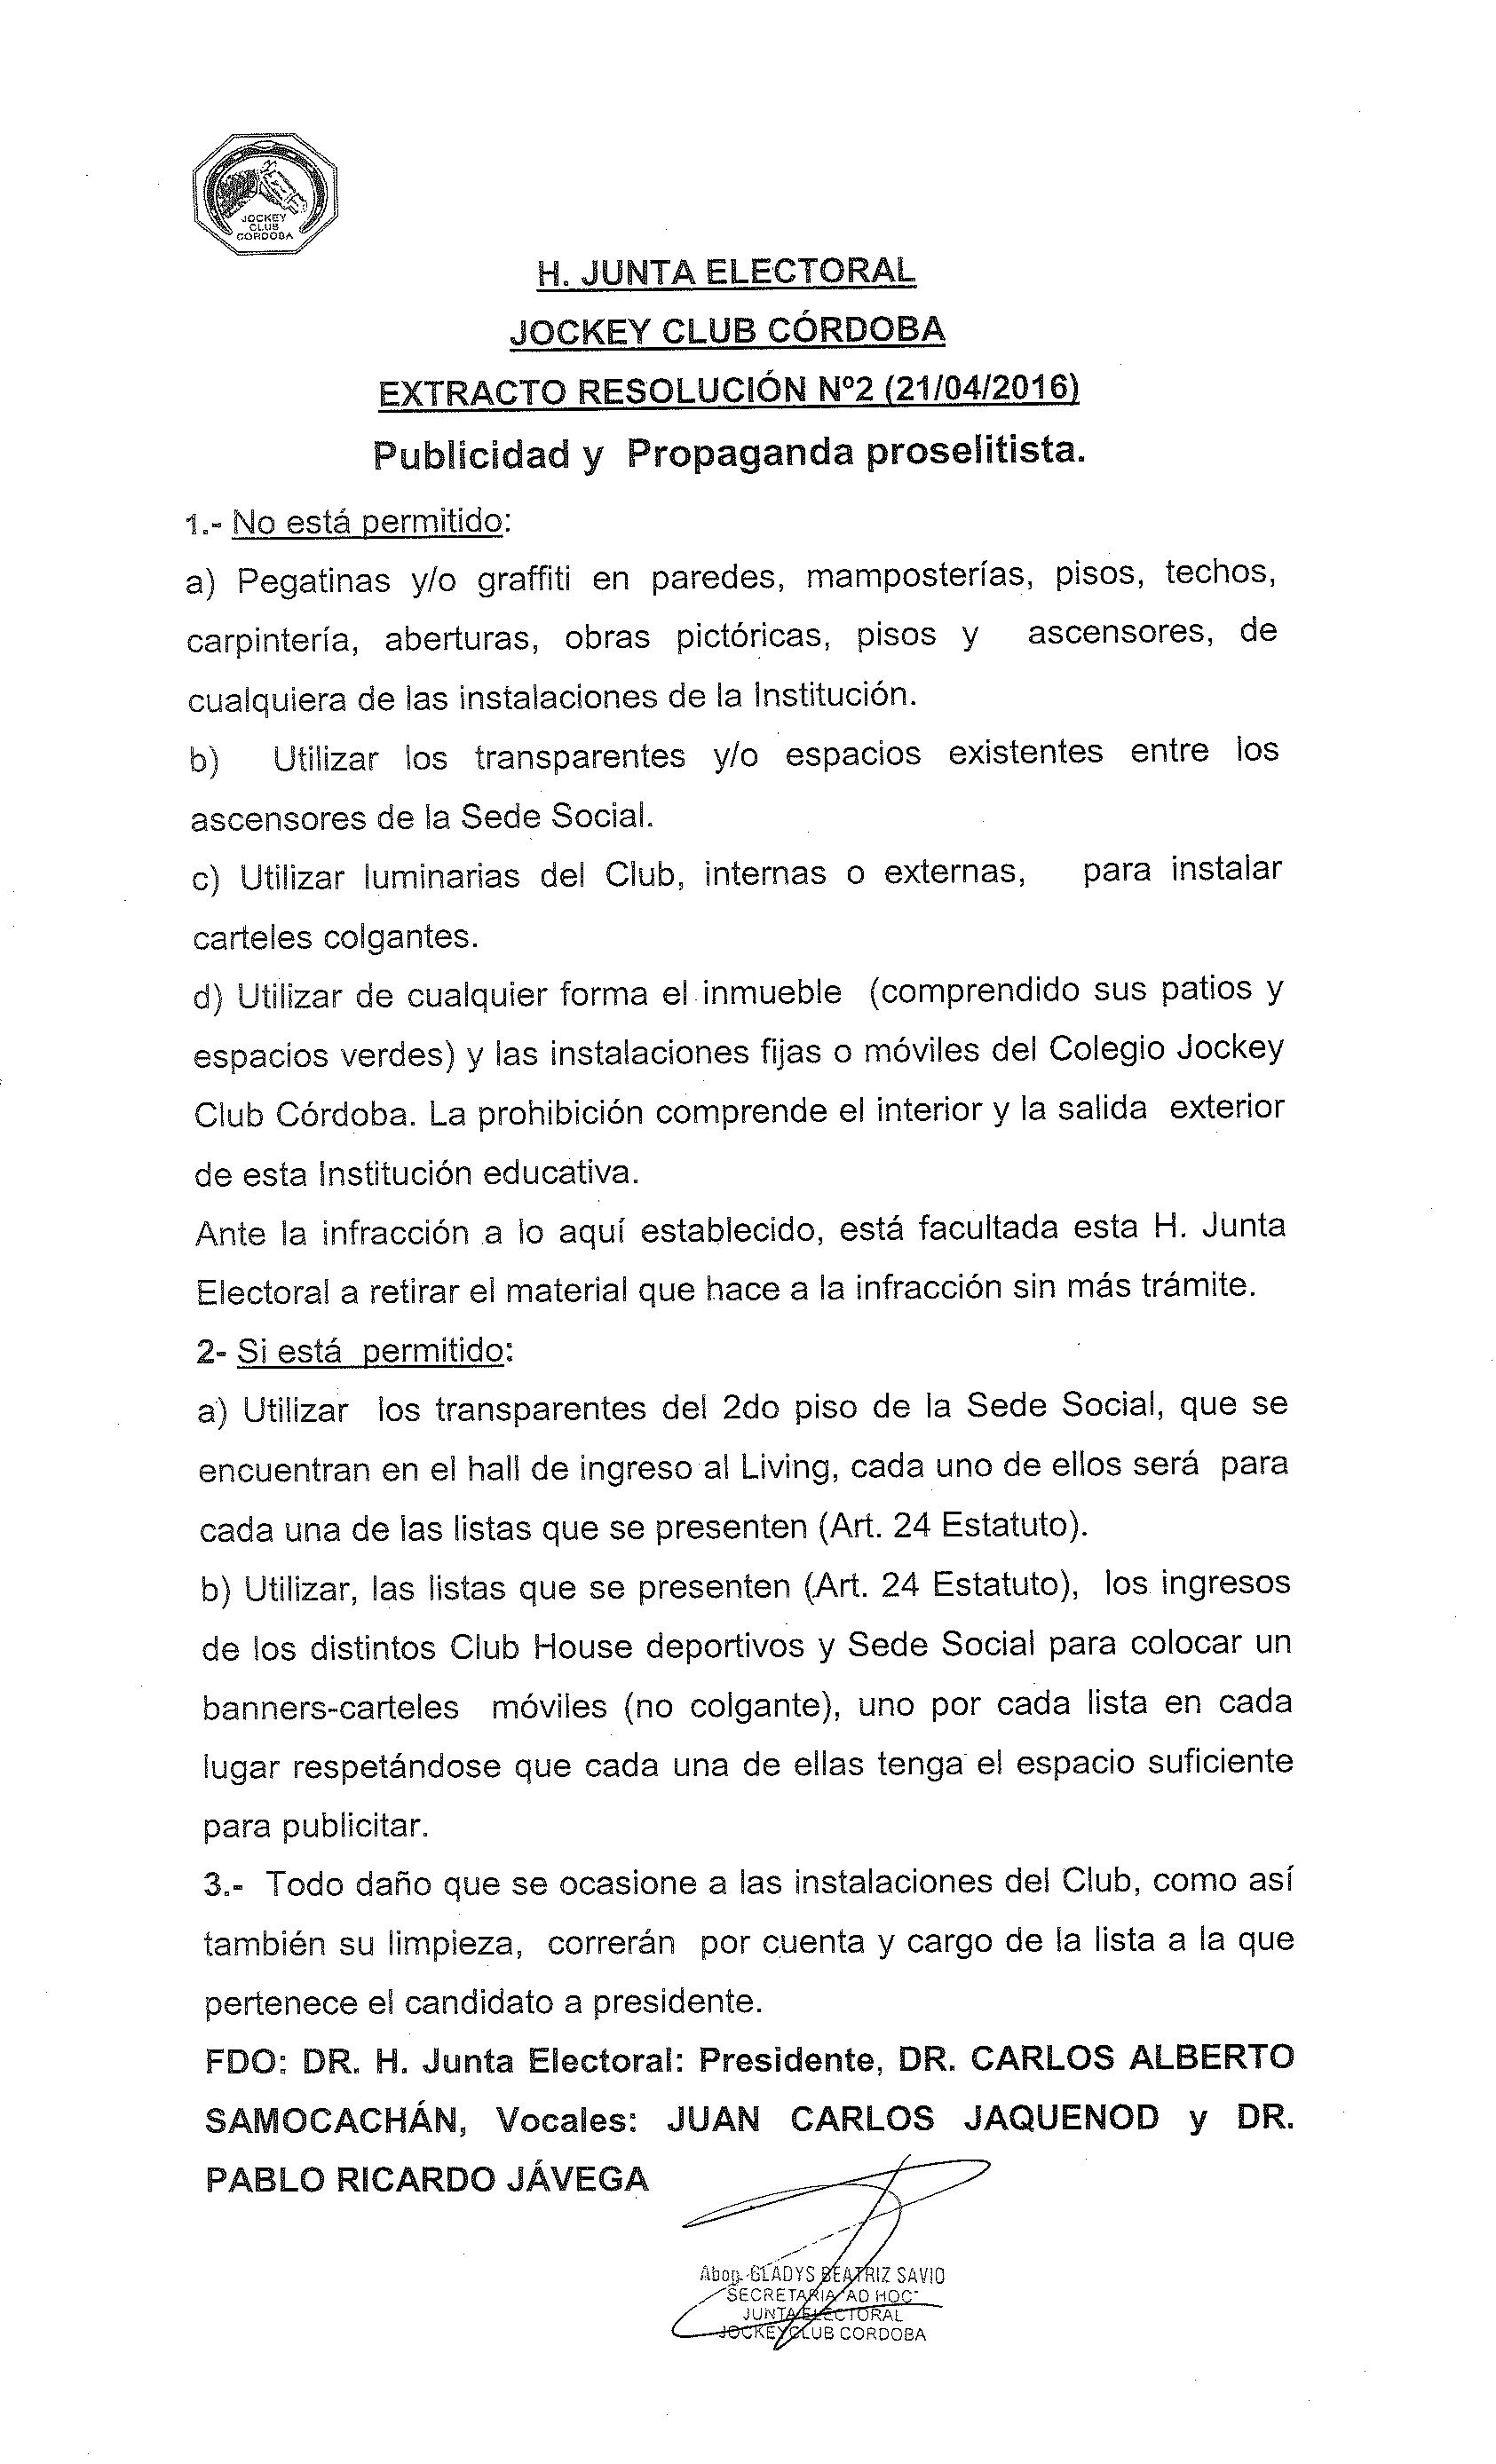 Extracto-resolucion_n2_hjuntaelectoral